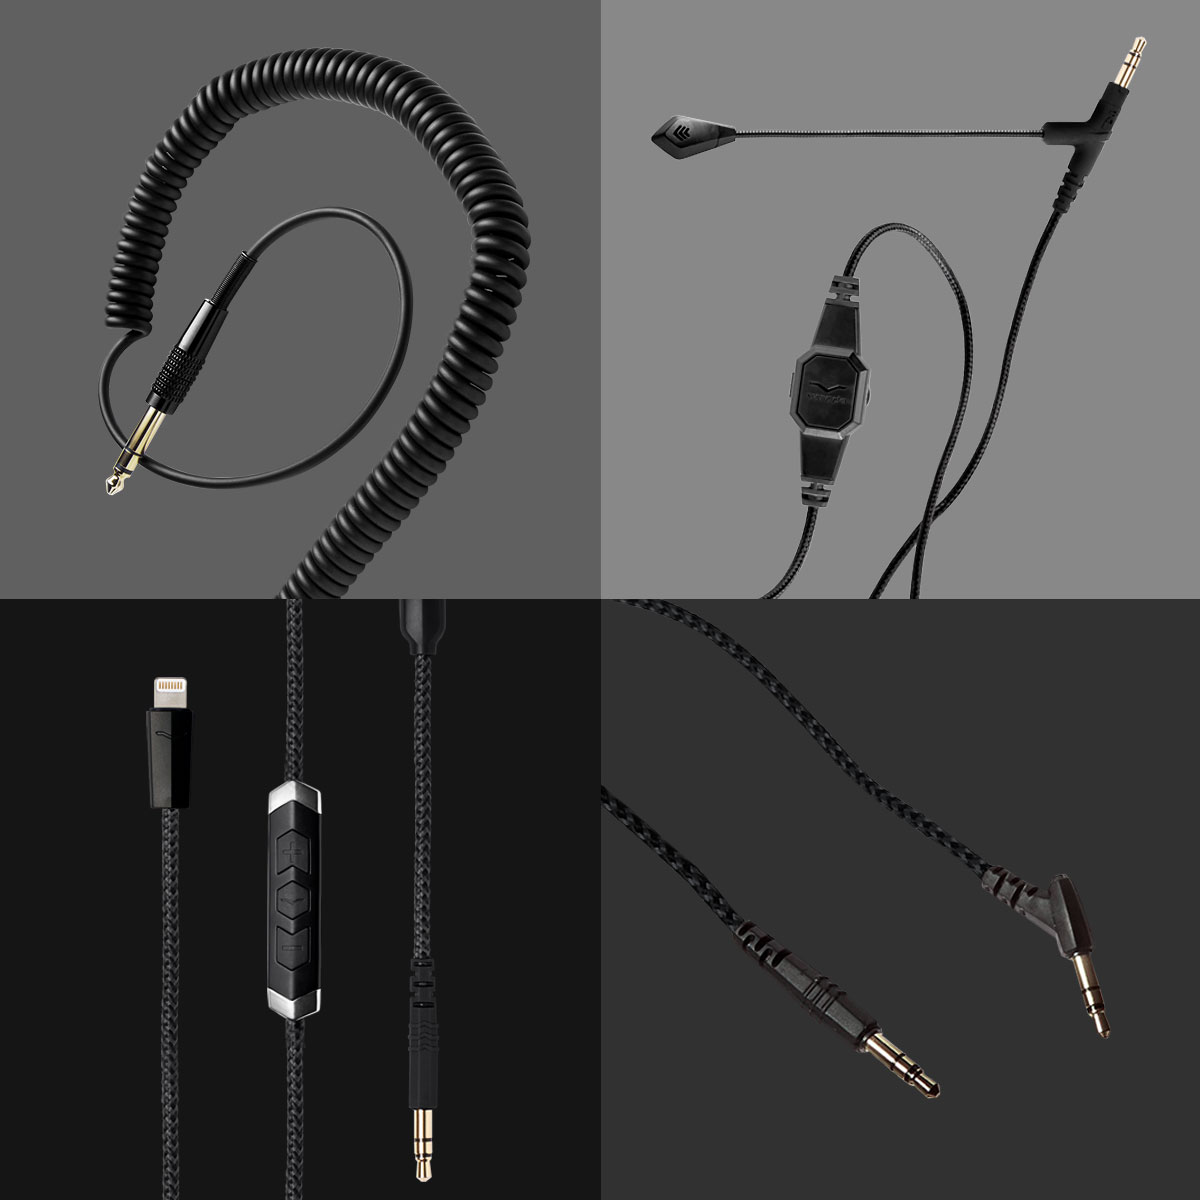 Optional extra cables for Crossfade M-100